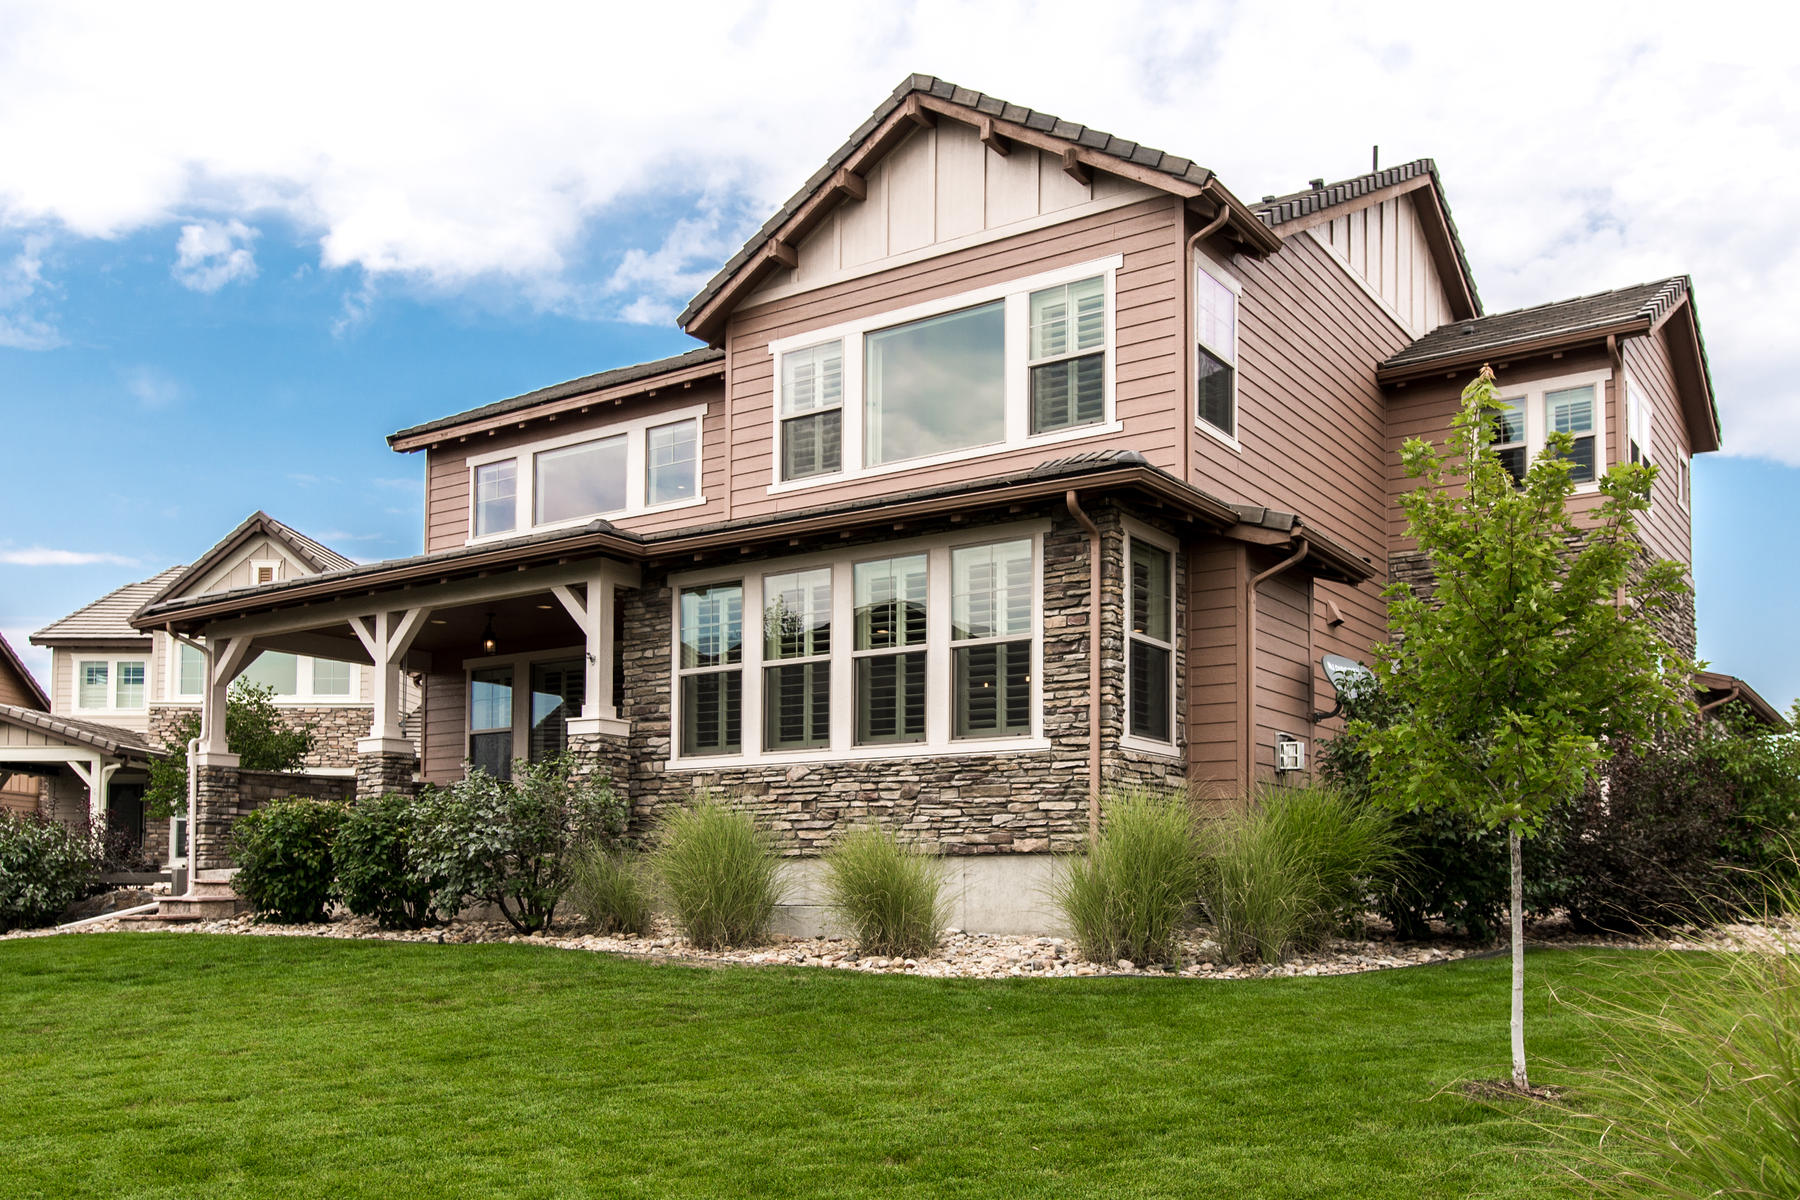 Additional photo for property listing at Don't miss the Meticulously maintain 2 story villa in Backcountry! 10683 Featherwalk Way Highlands Ranch, Colorado 80126 United States